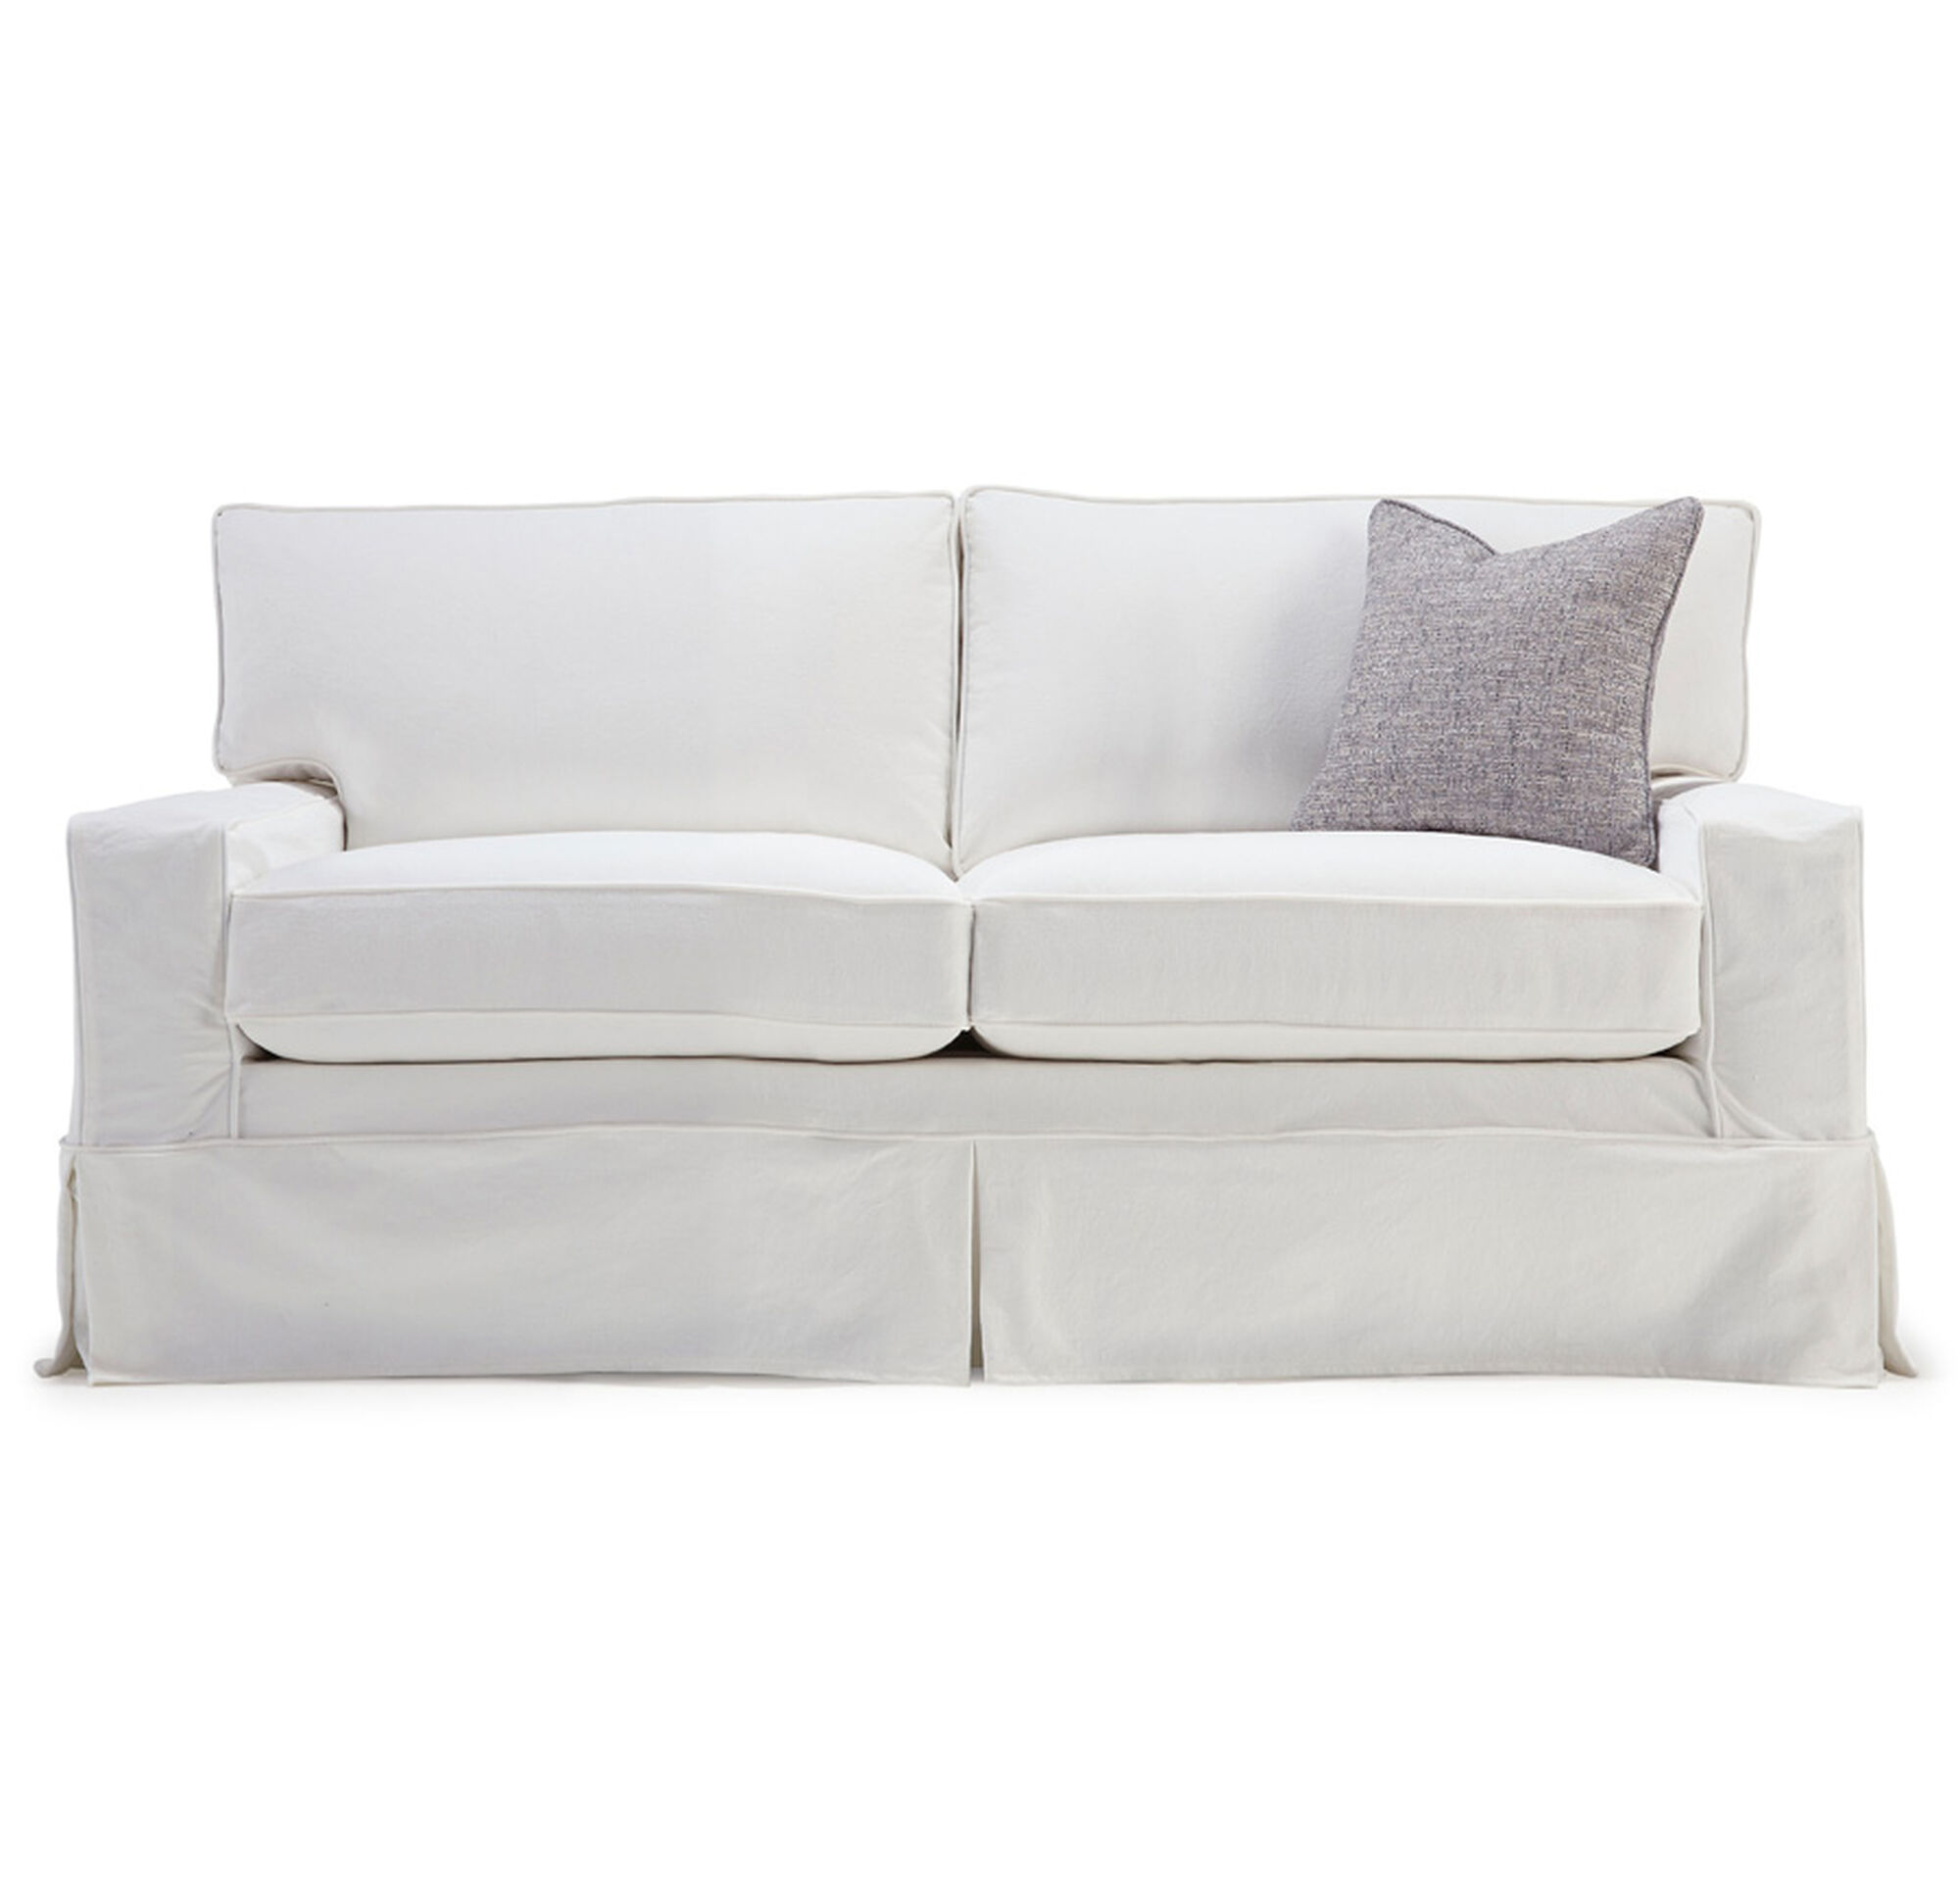 covers slipcovers couch stunning sure with furniture ideas for armless sofa slipcover of fit design